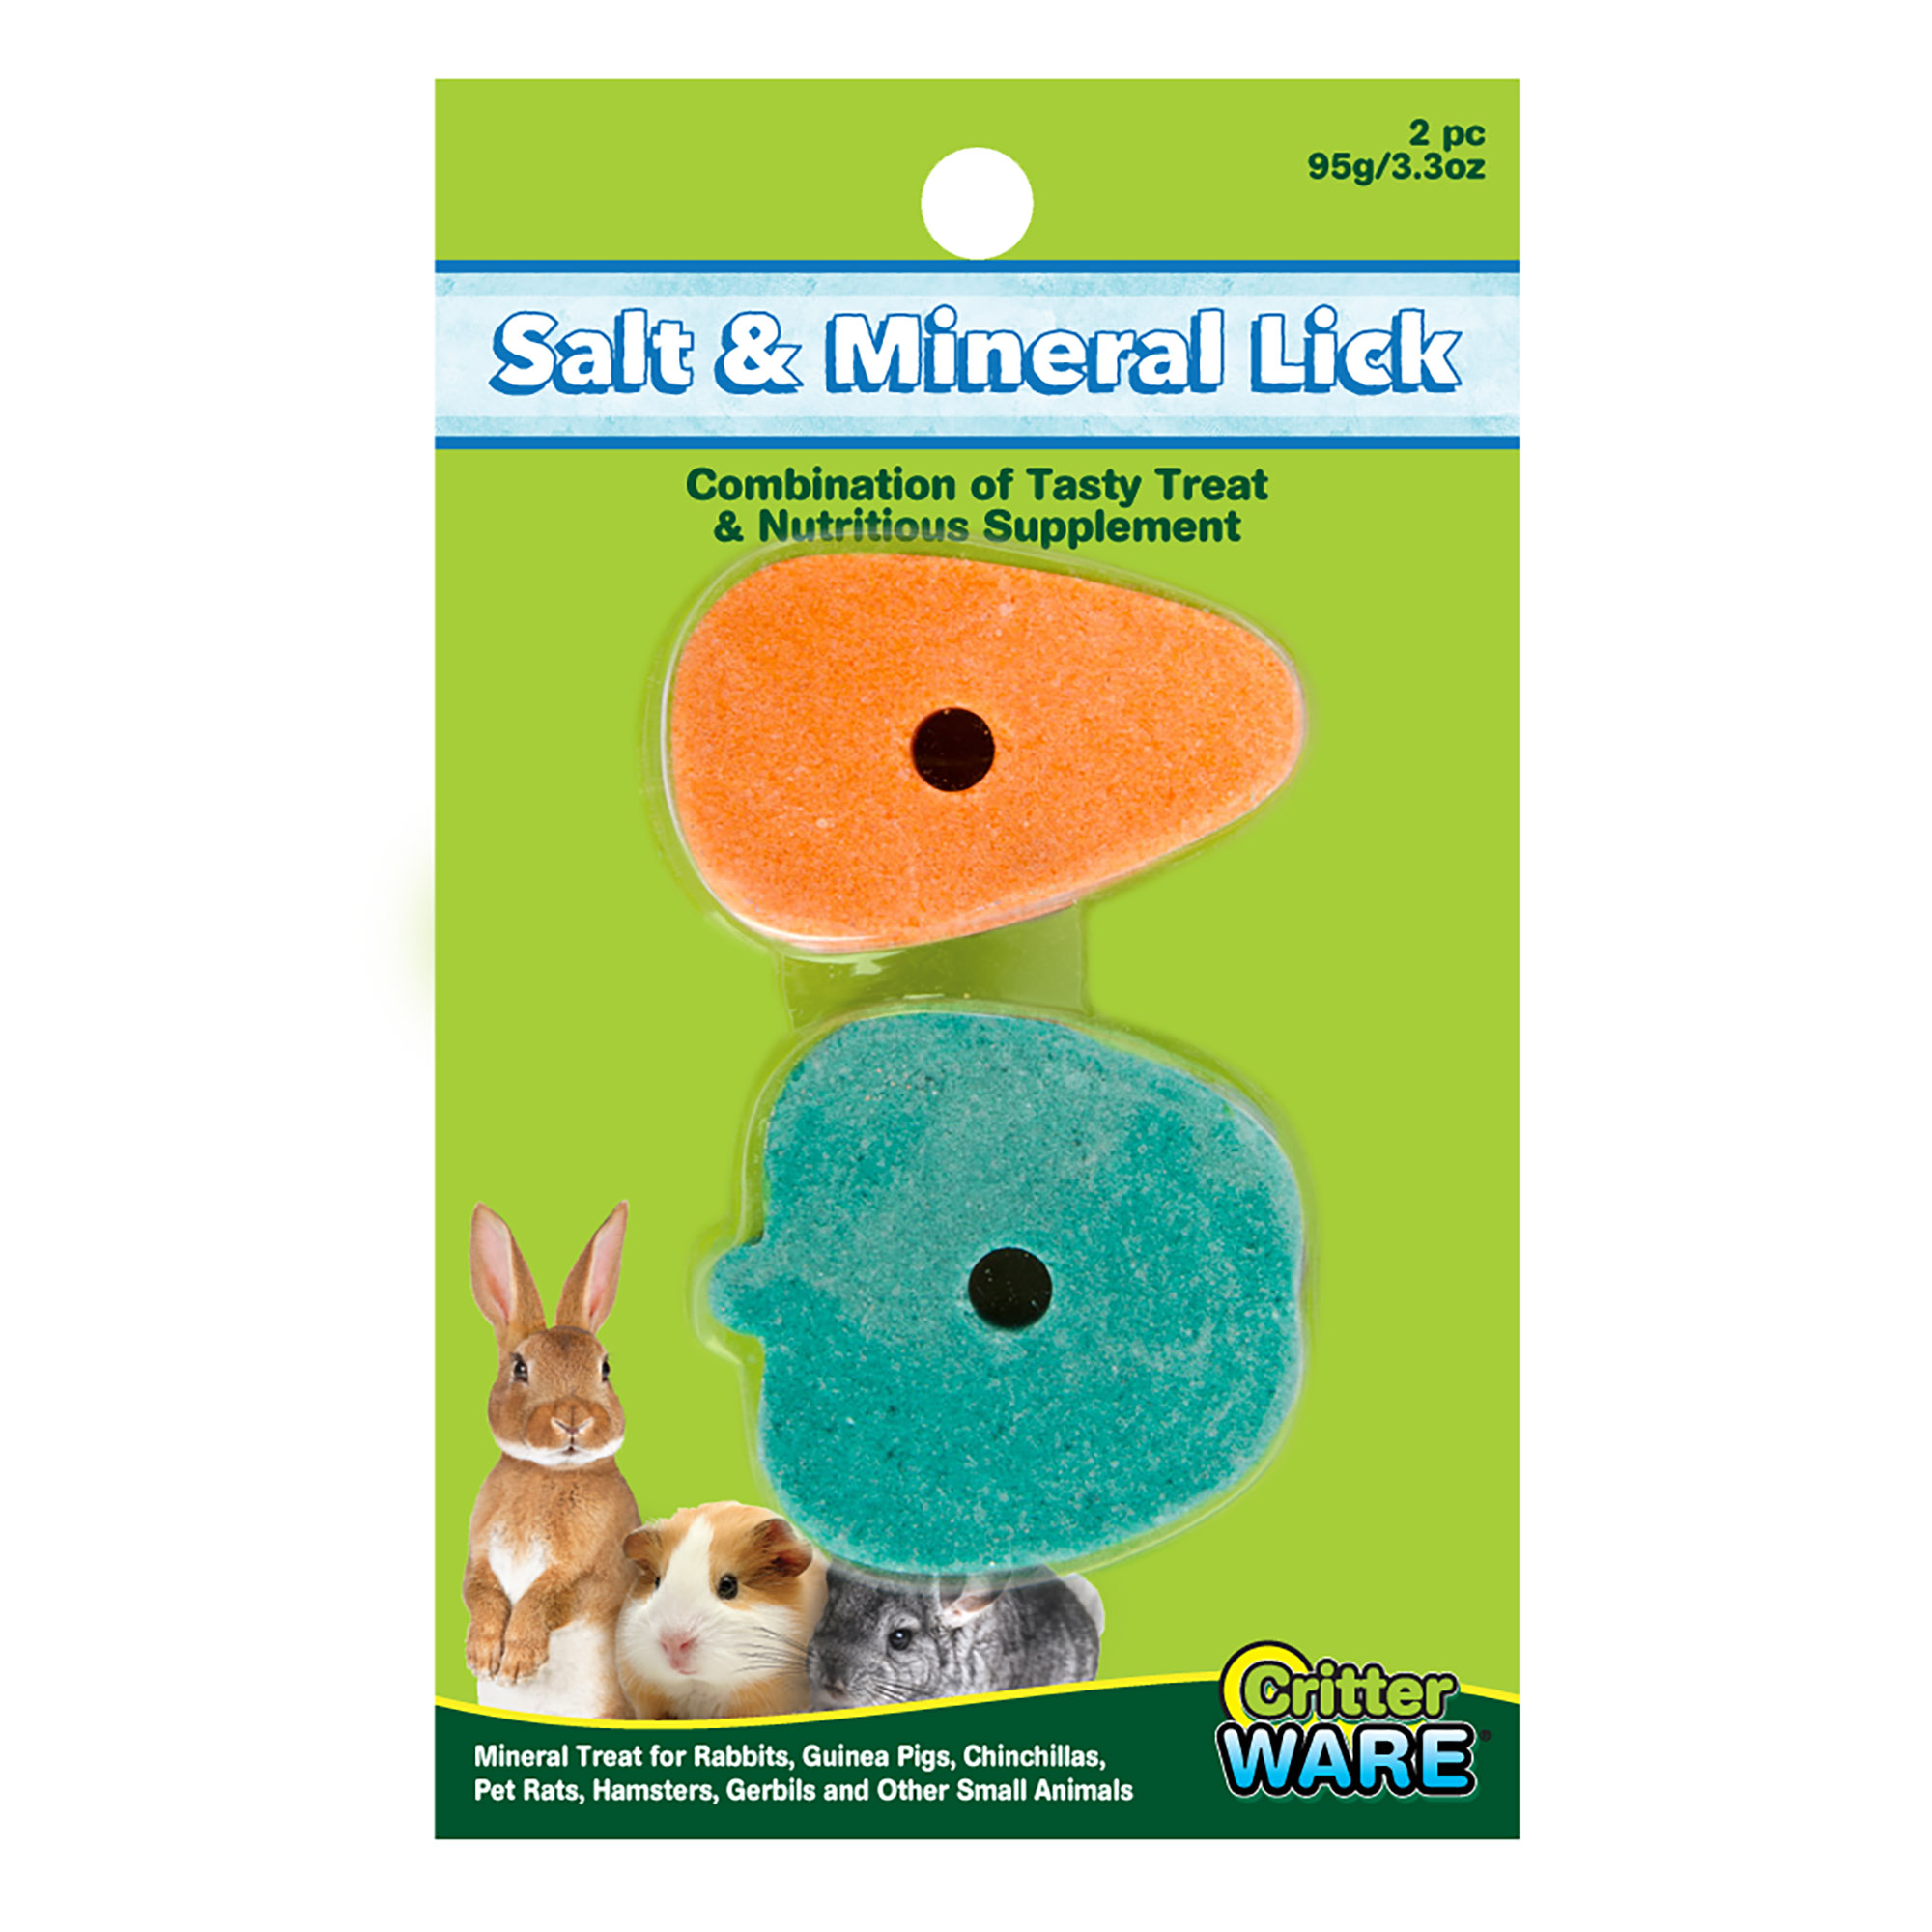 Ware Salt and Trace Mineral Lick, Small Pet Suppliment Image